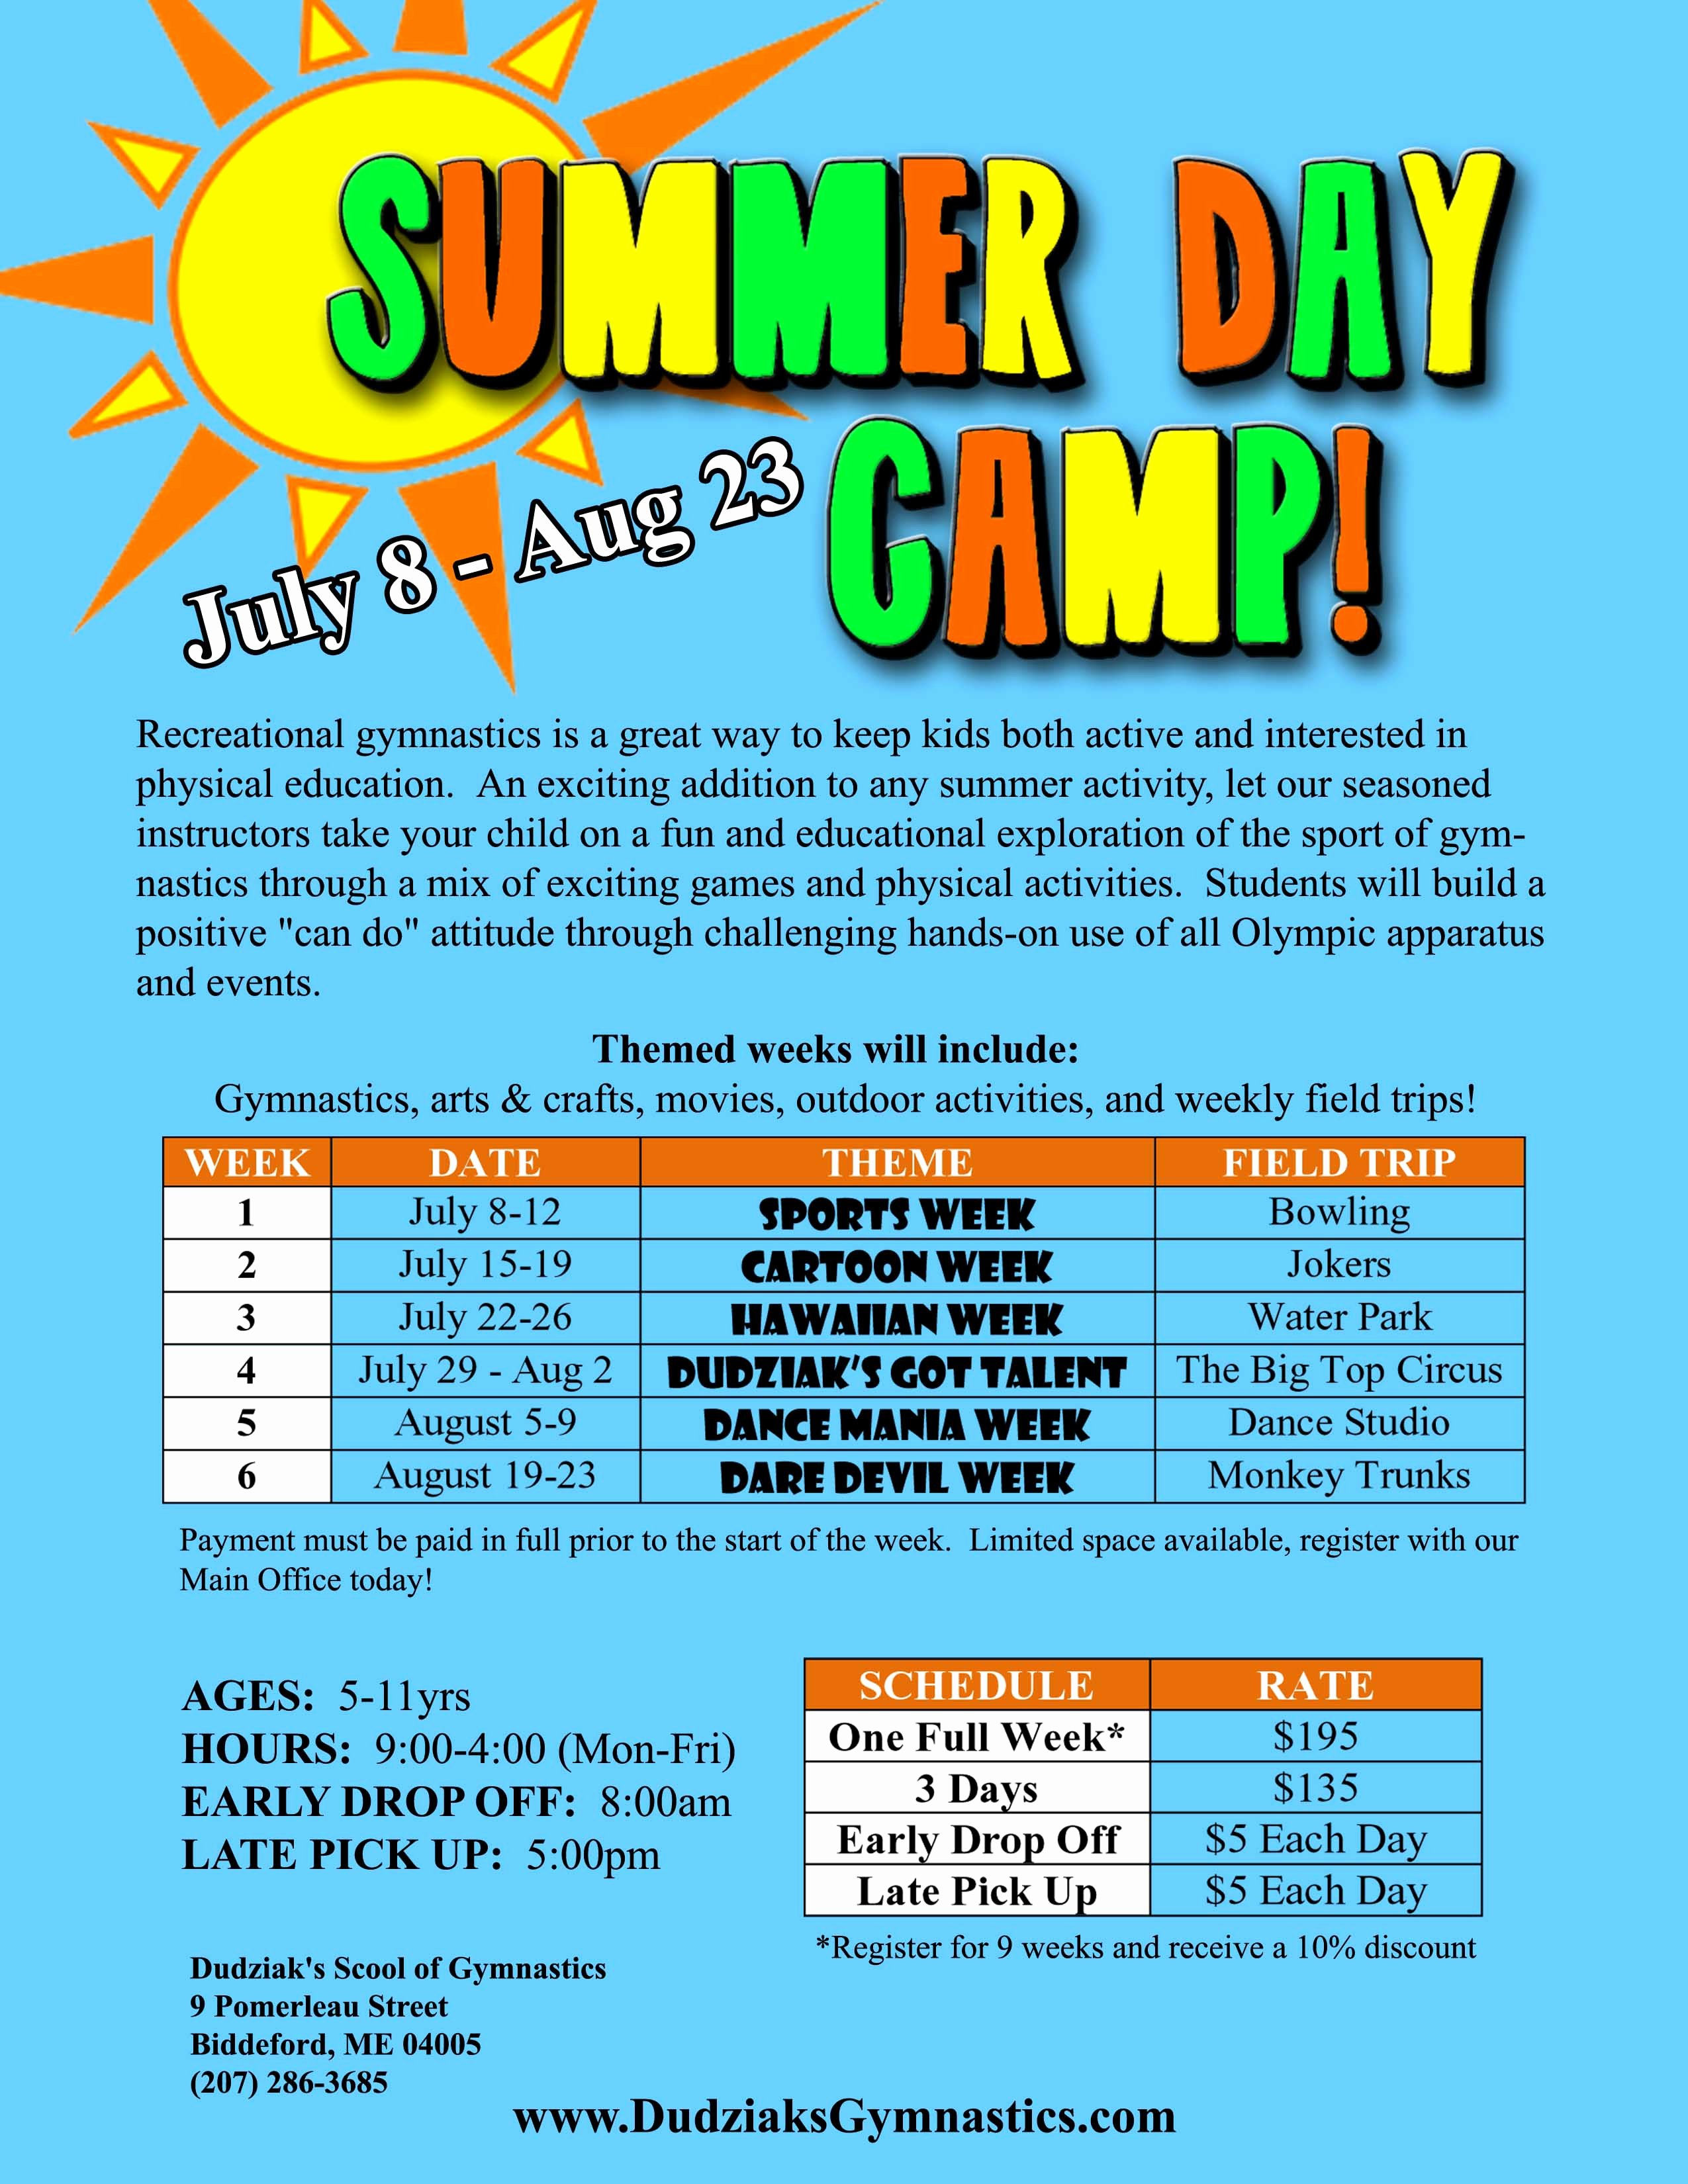 Summer Camp Flyer Templates Free Inspirational Flyer Design Gallery Category Page 53 Designtos